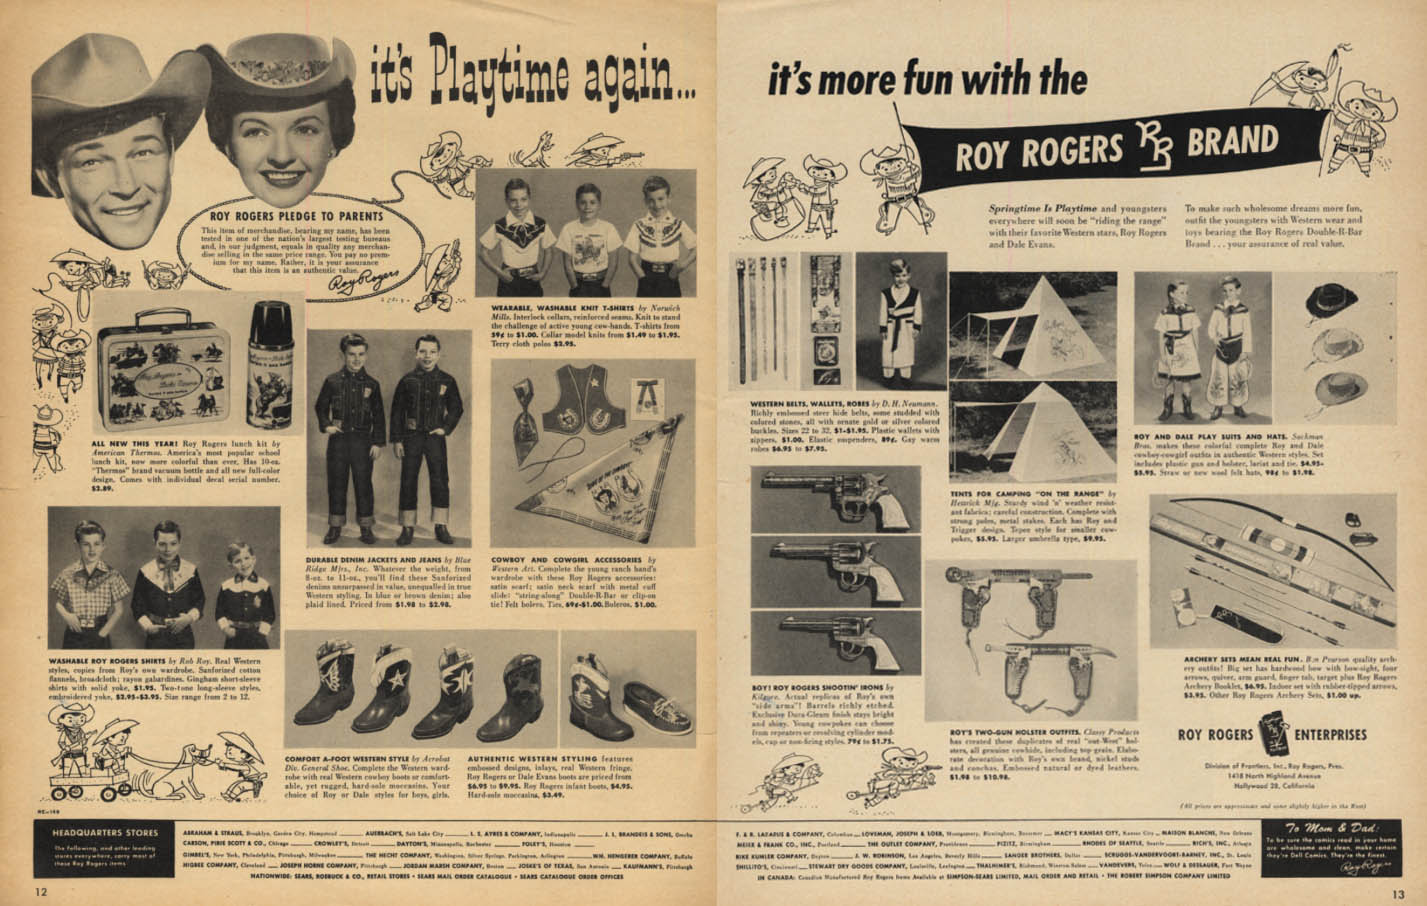 Playtime is more fun again with Roy Rogers Brand toys ad 1955 L